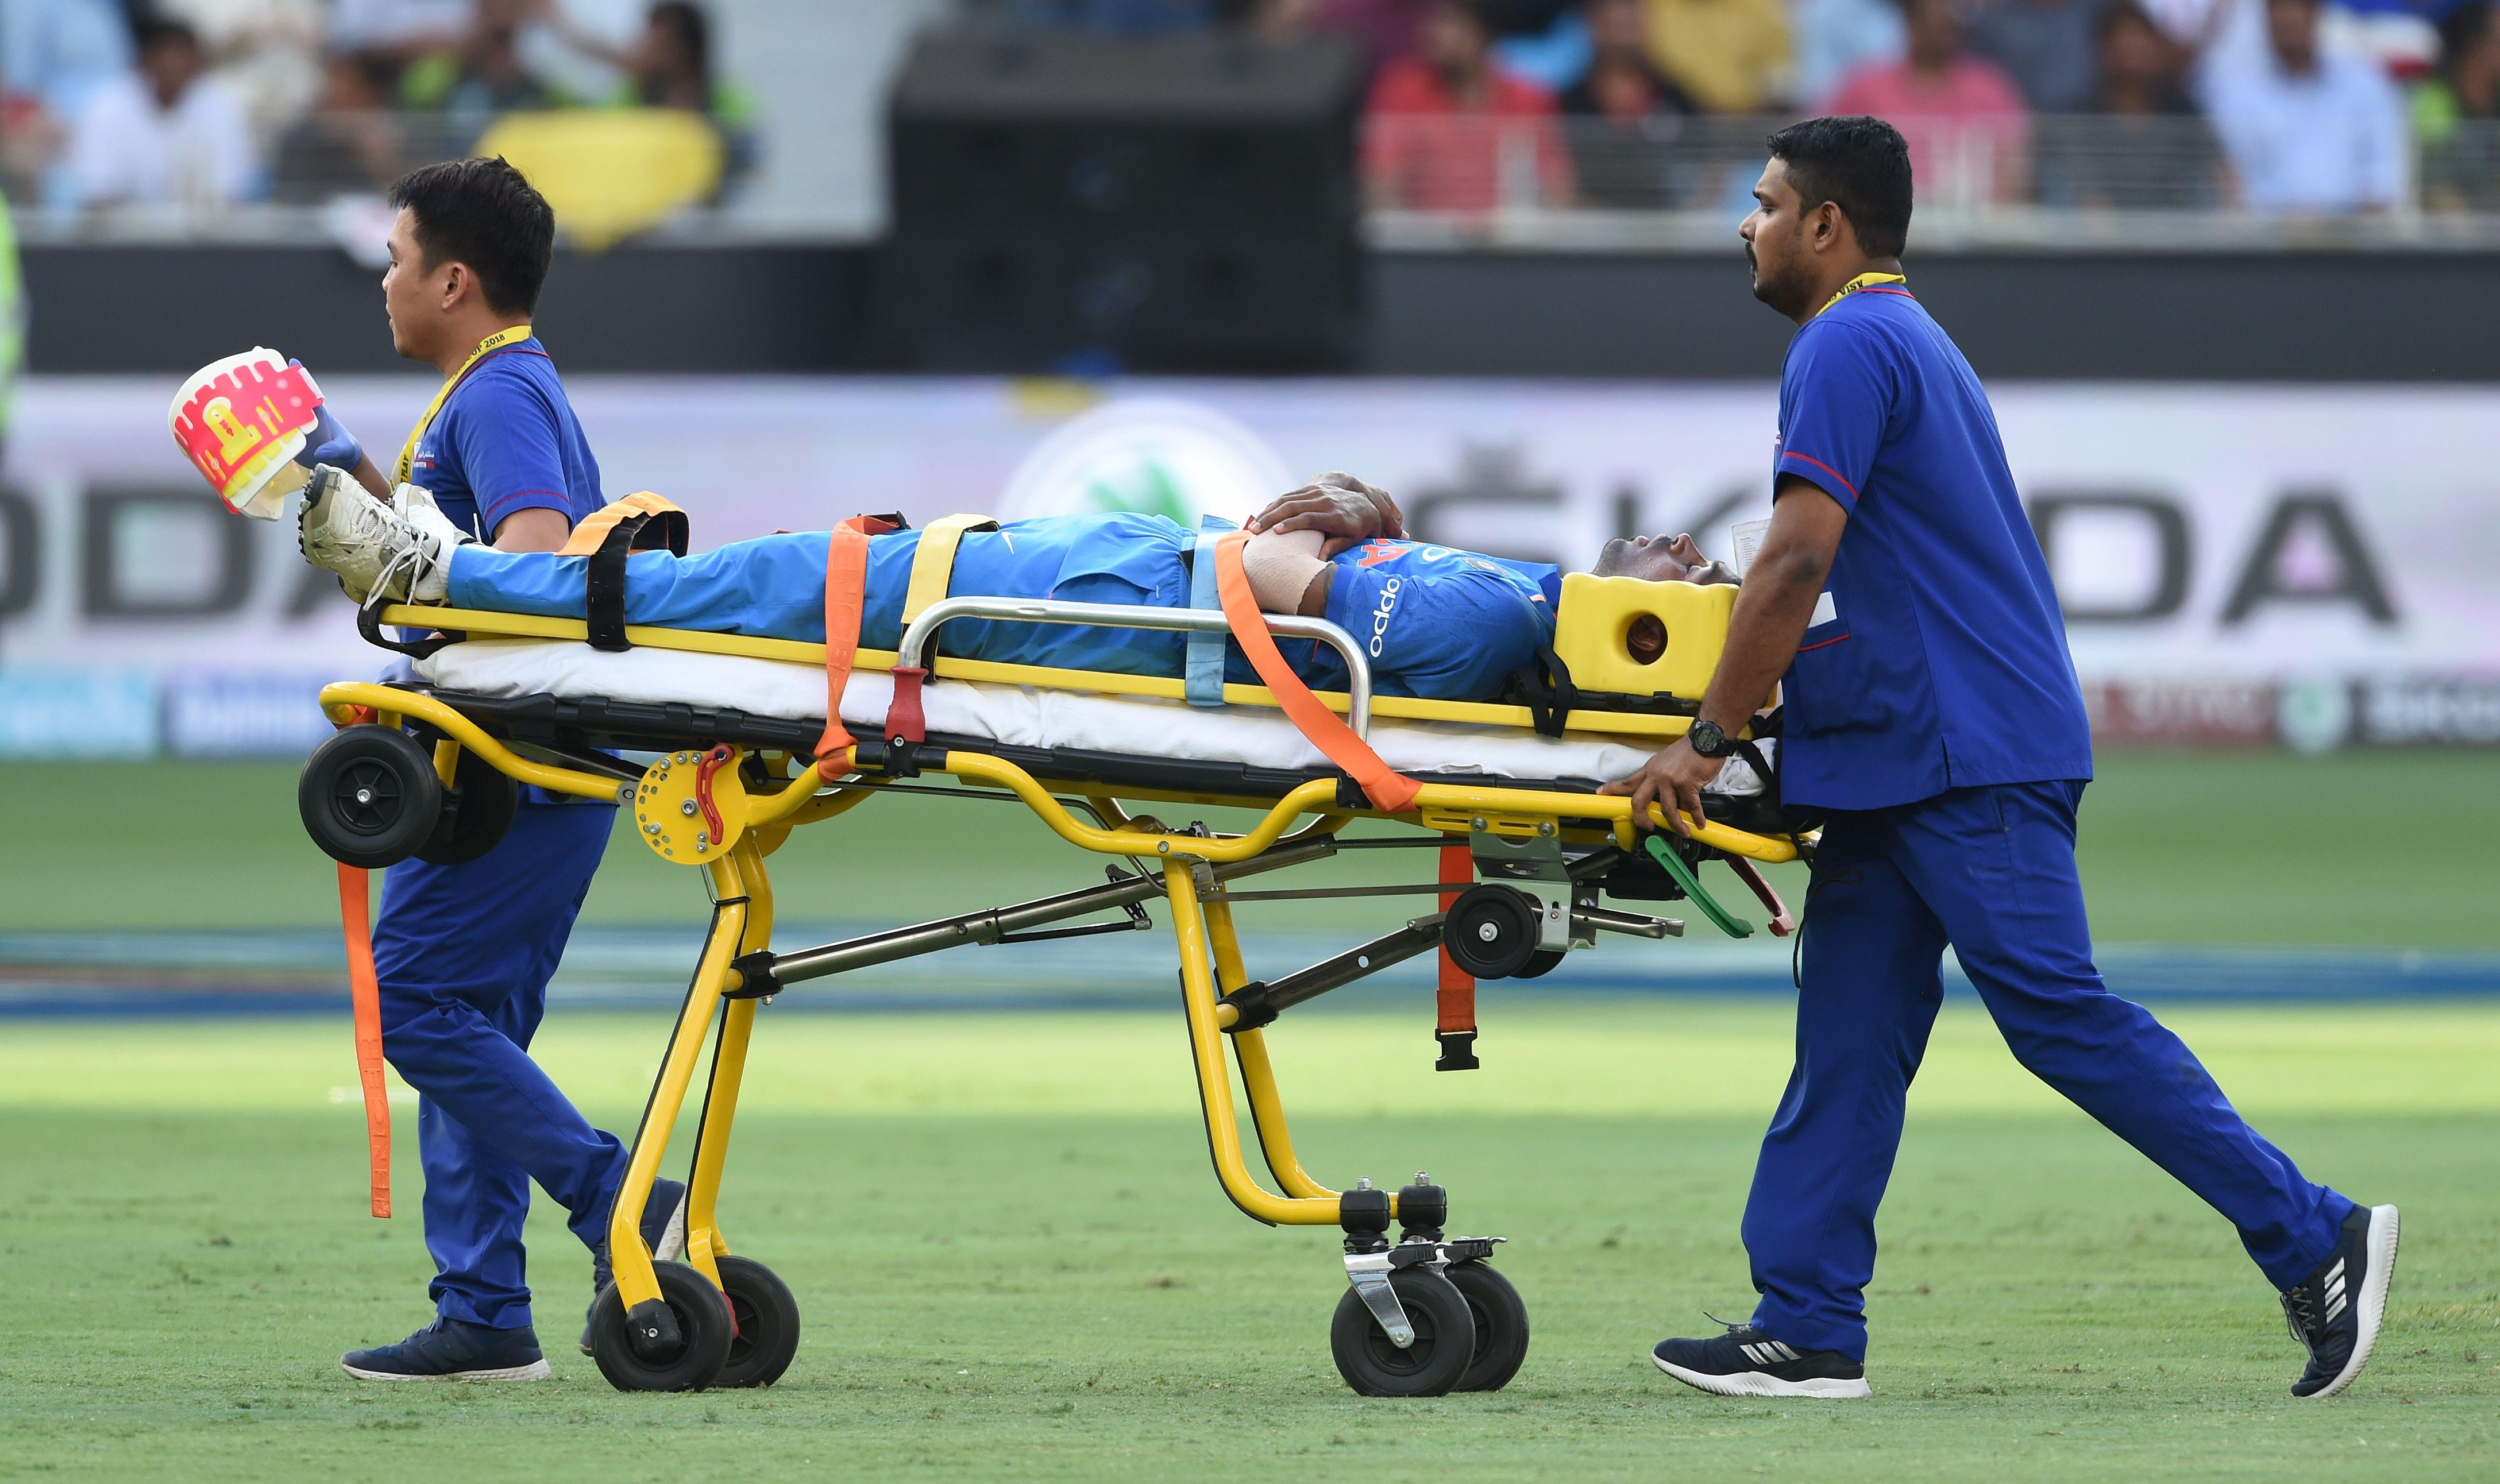 Hardik Pandya had to be taken off on a stretcher during India's ODI clash against Pakistan